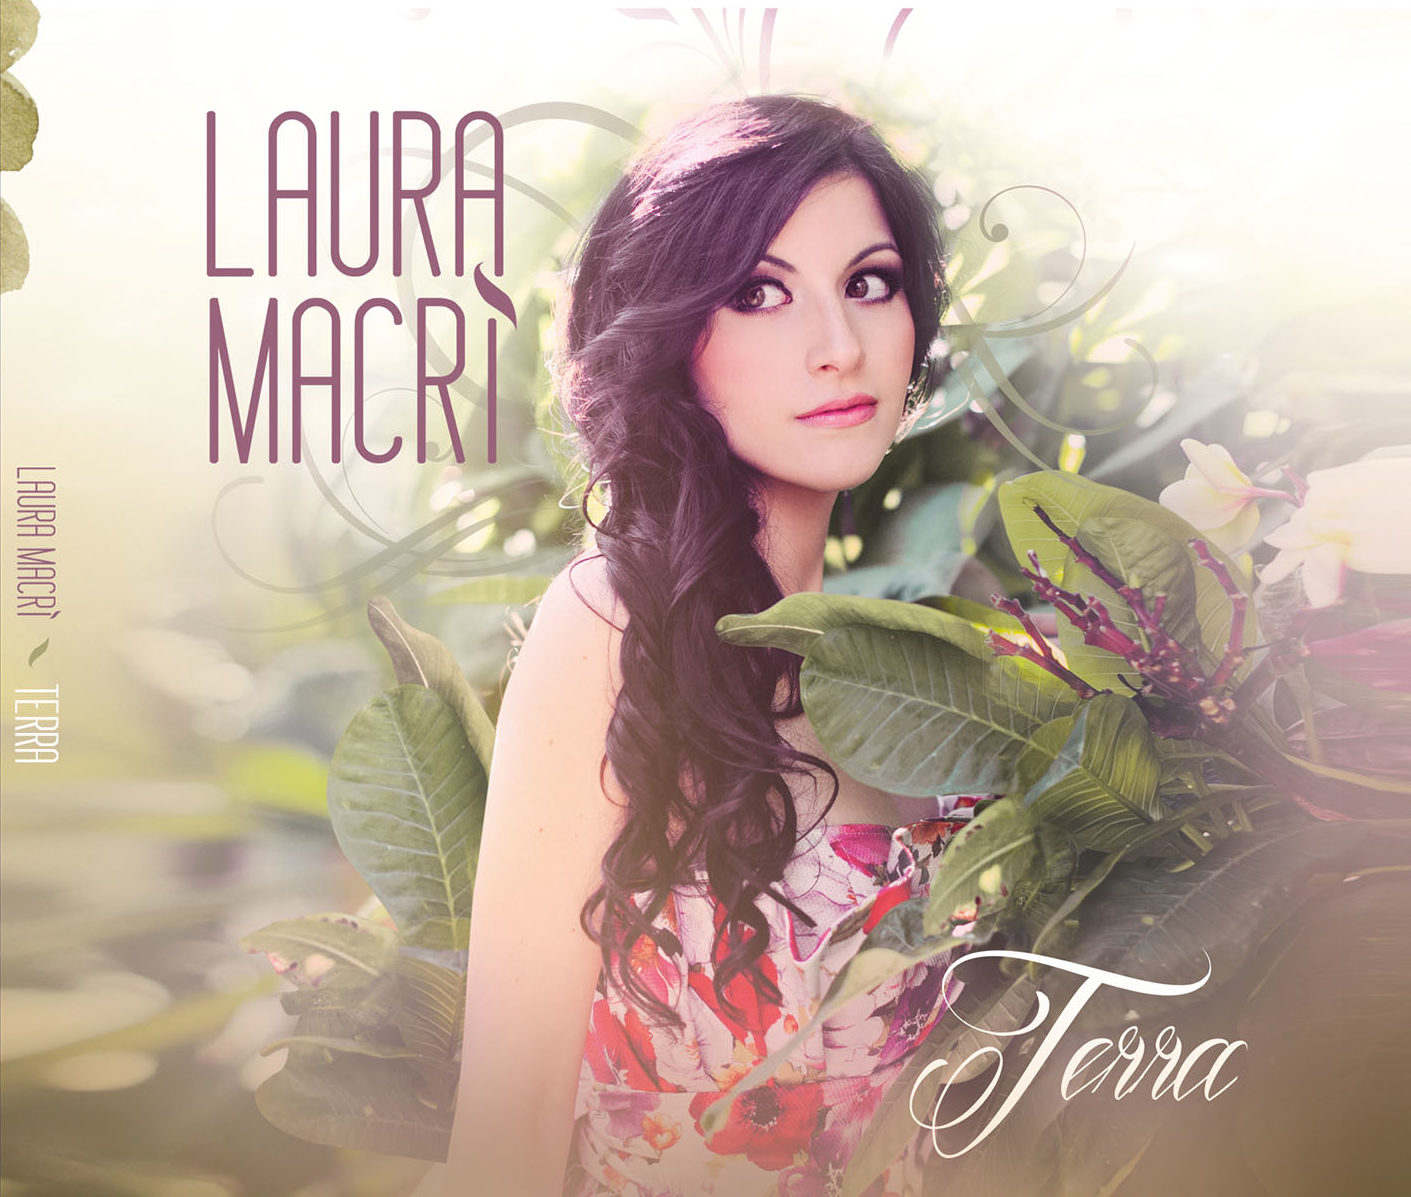 Terra Laura Macrì Official Website